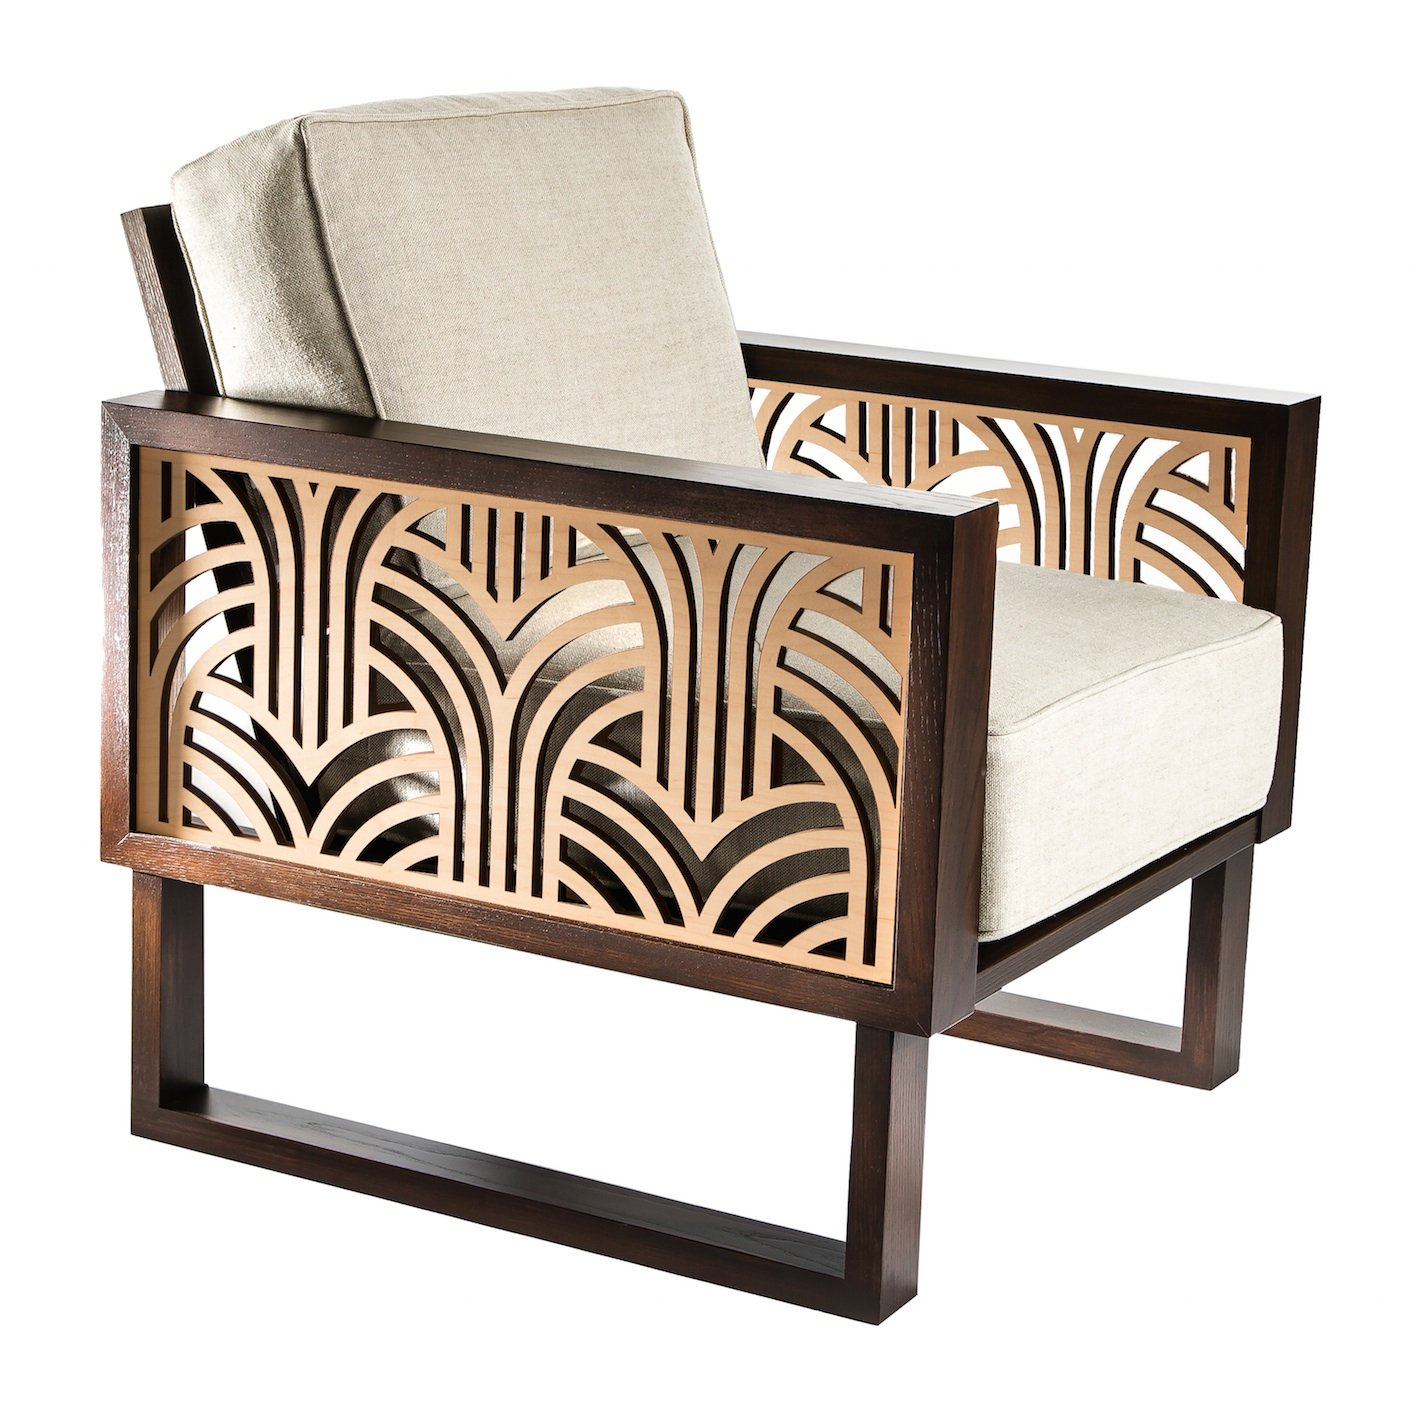 Art deco lounge chair twist modern - Deco lounge eetkamer modern ...